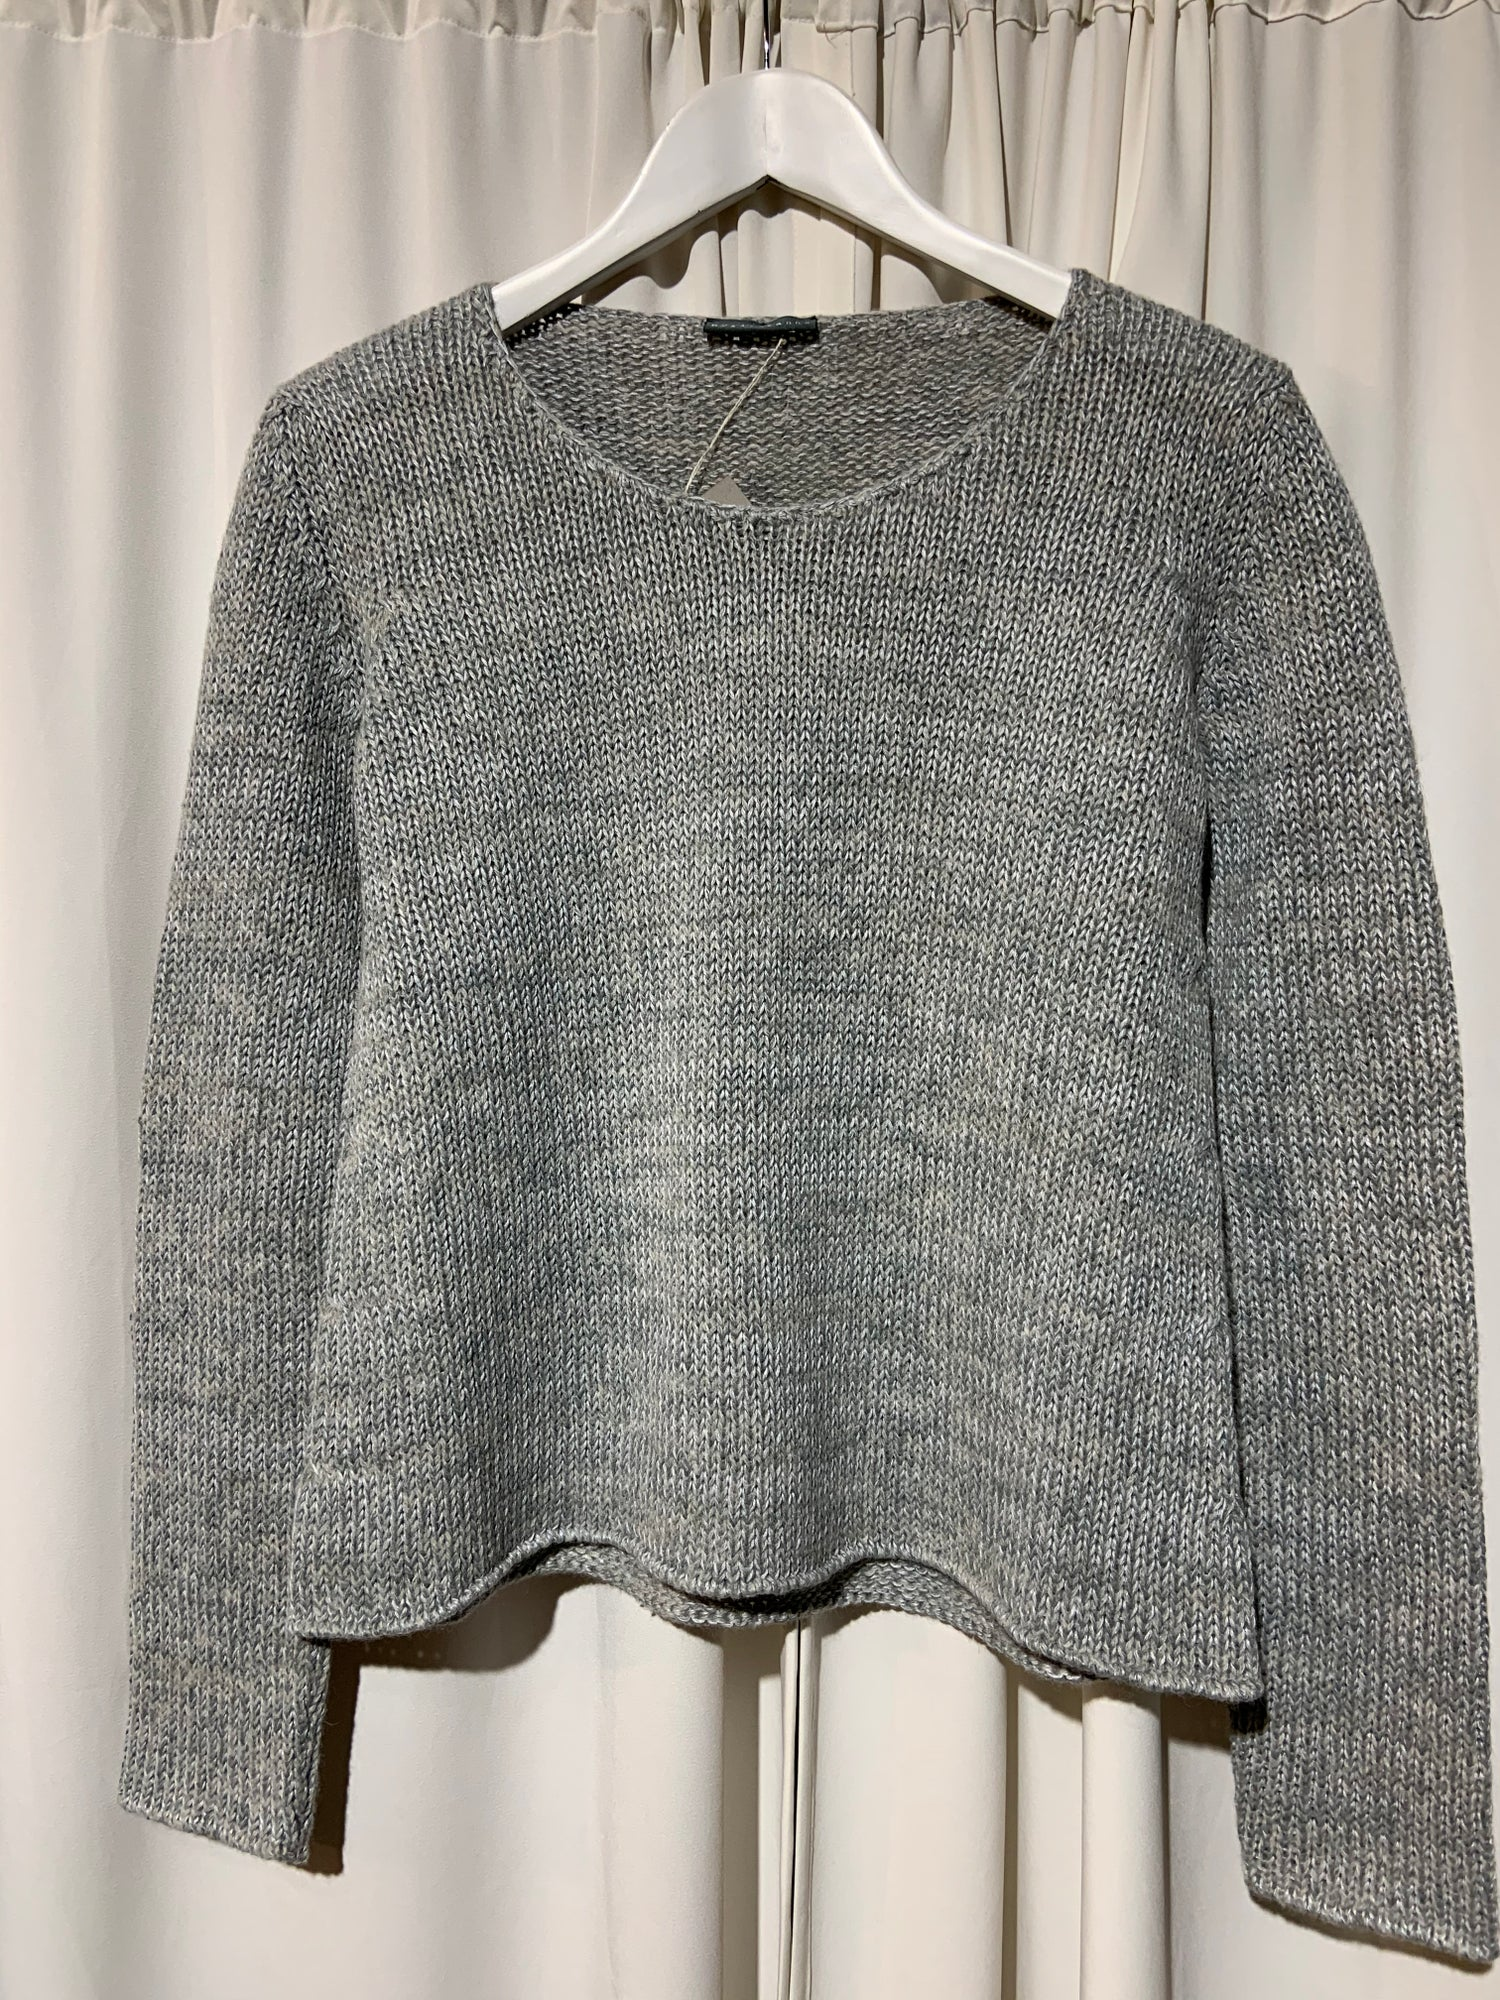 Image of NYGARDSANNA Sweater grey blue